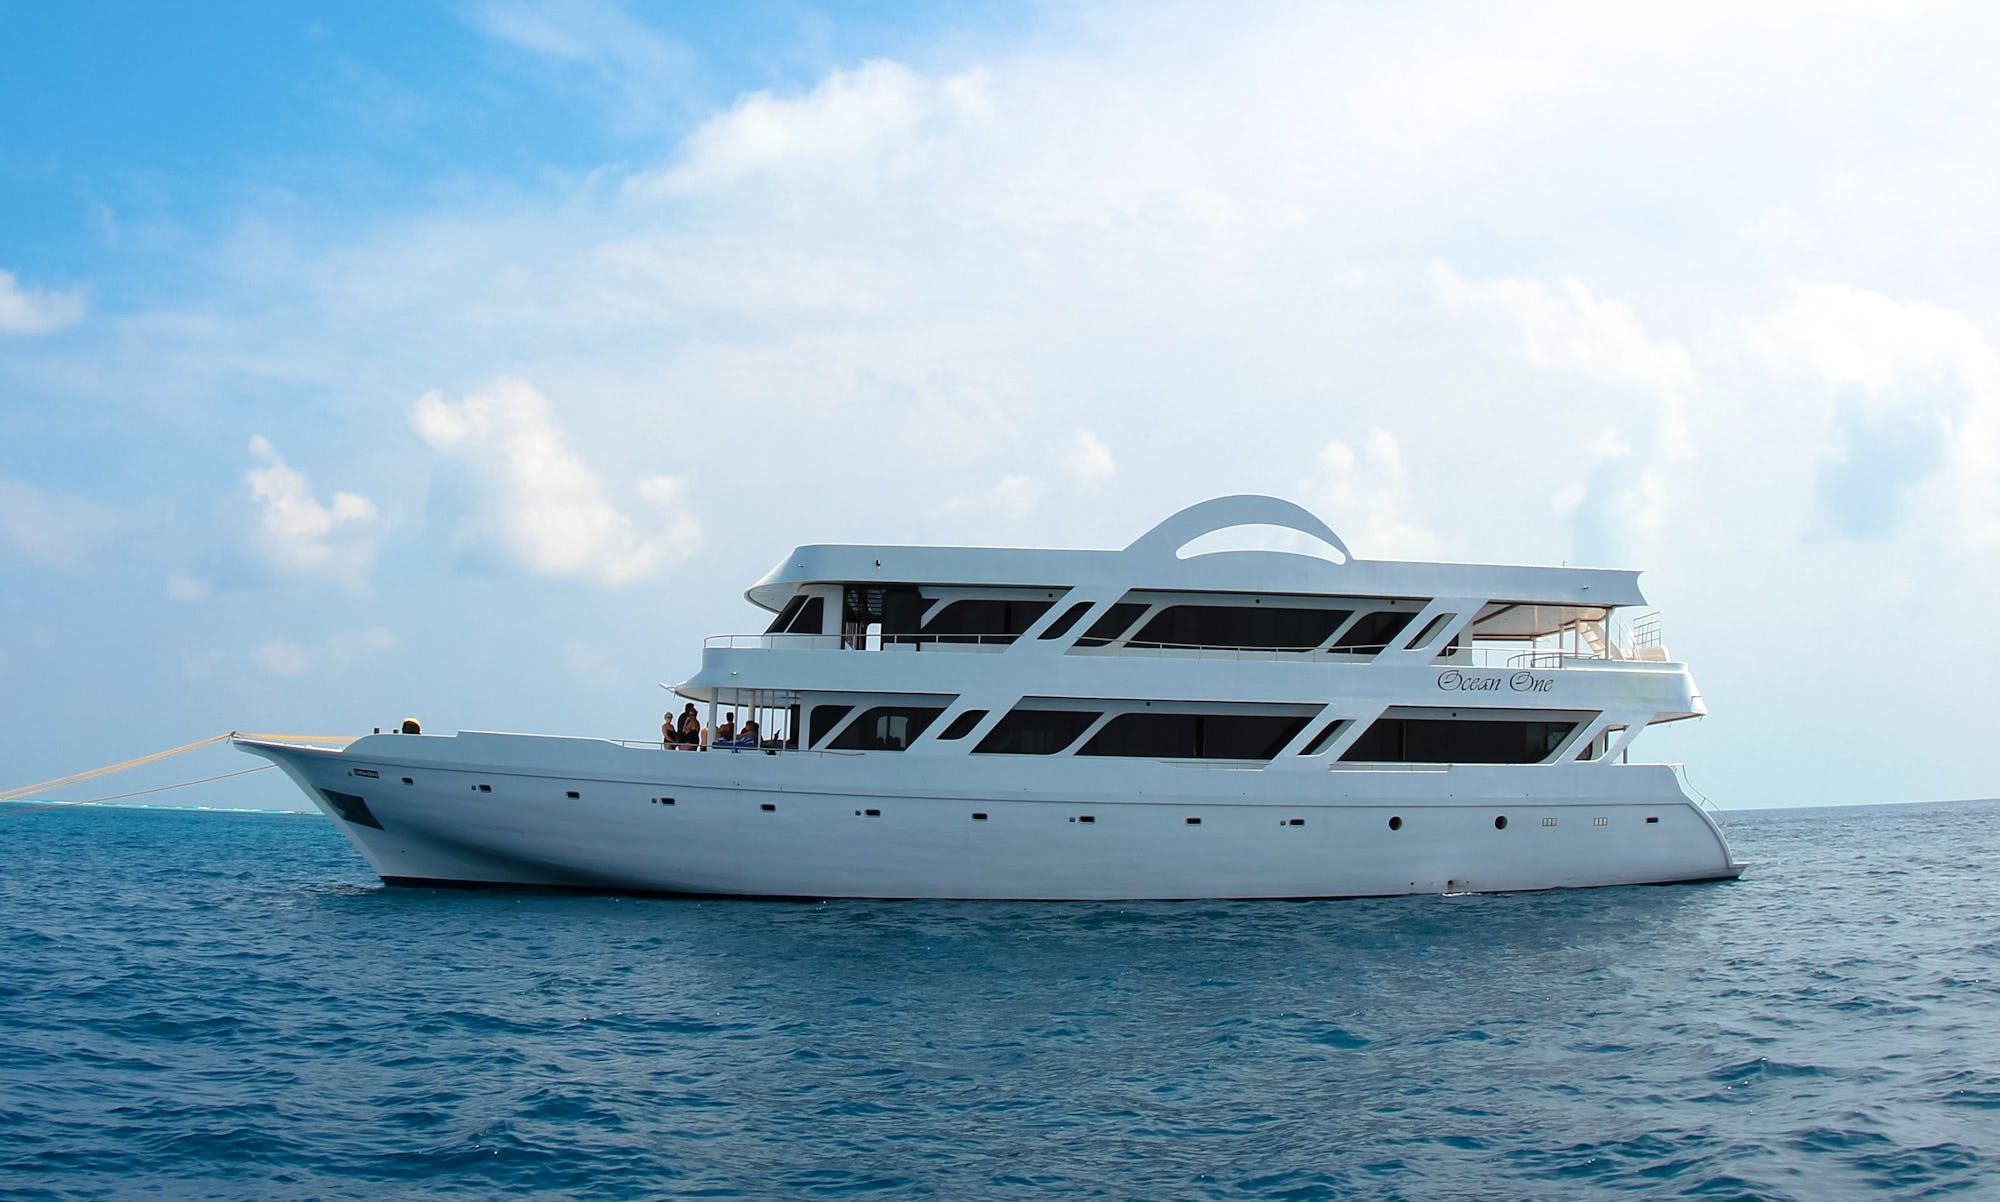 """""""OCEAN ONE"""" Maldives Yacht Charter from Malé"""